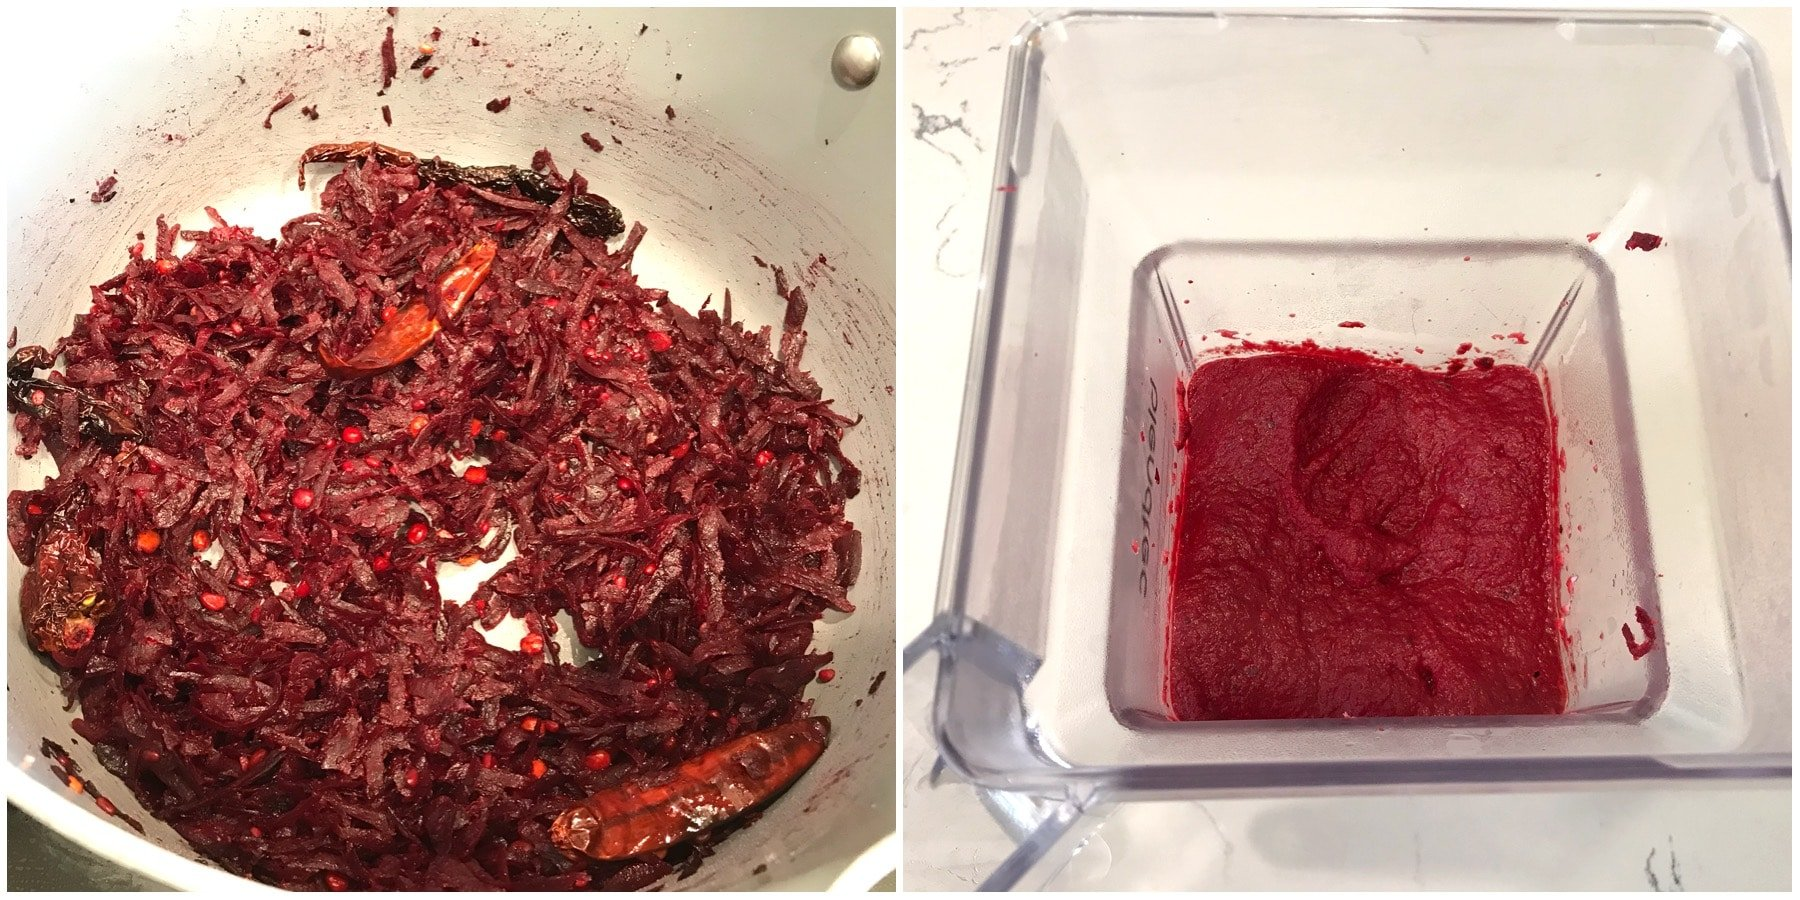 Blender is filled with beetroot sauce